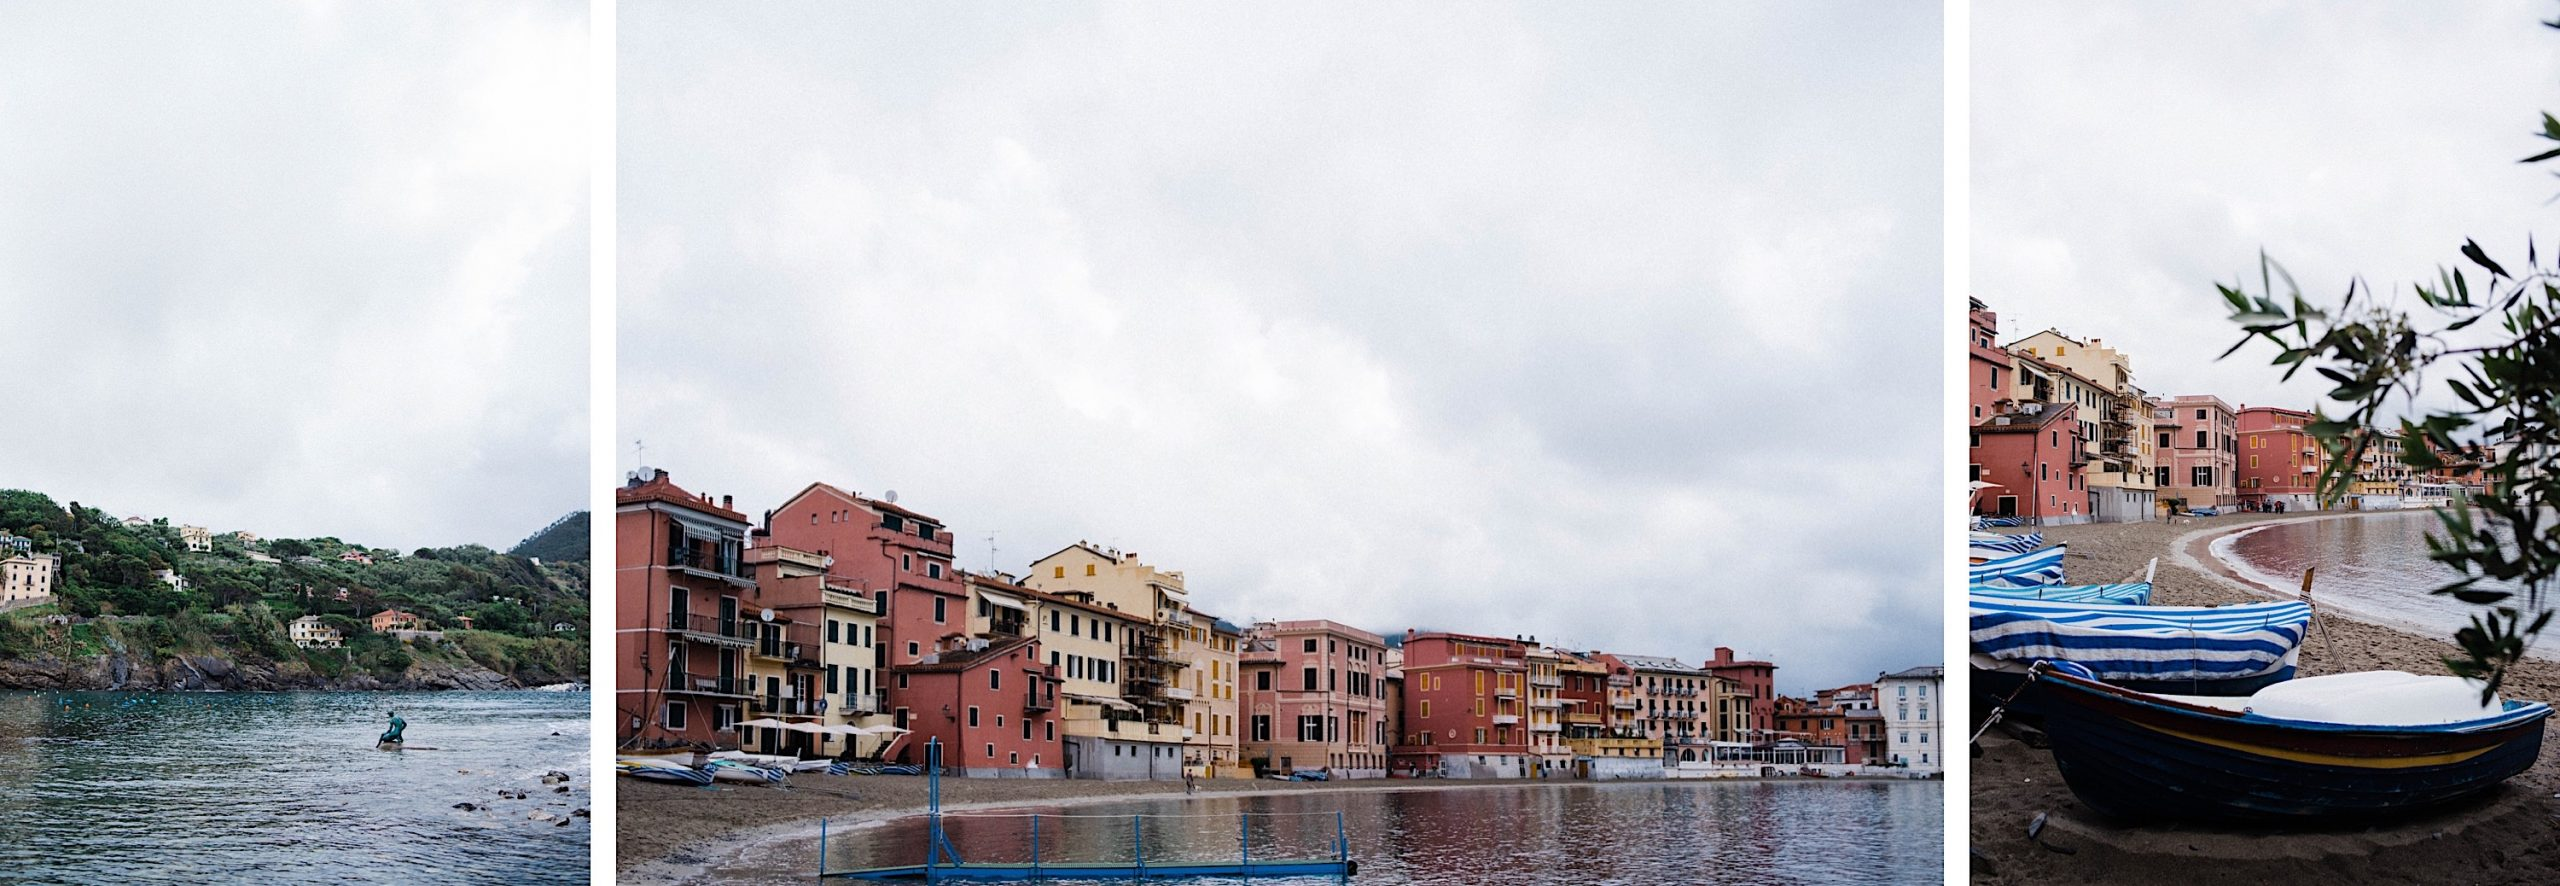 Three photos of Sestri Levante, including boats on the Bay of Silence and the facades of buildings along the Baia di Silenzio.